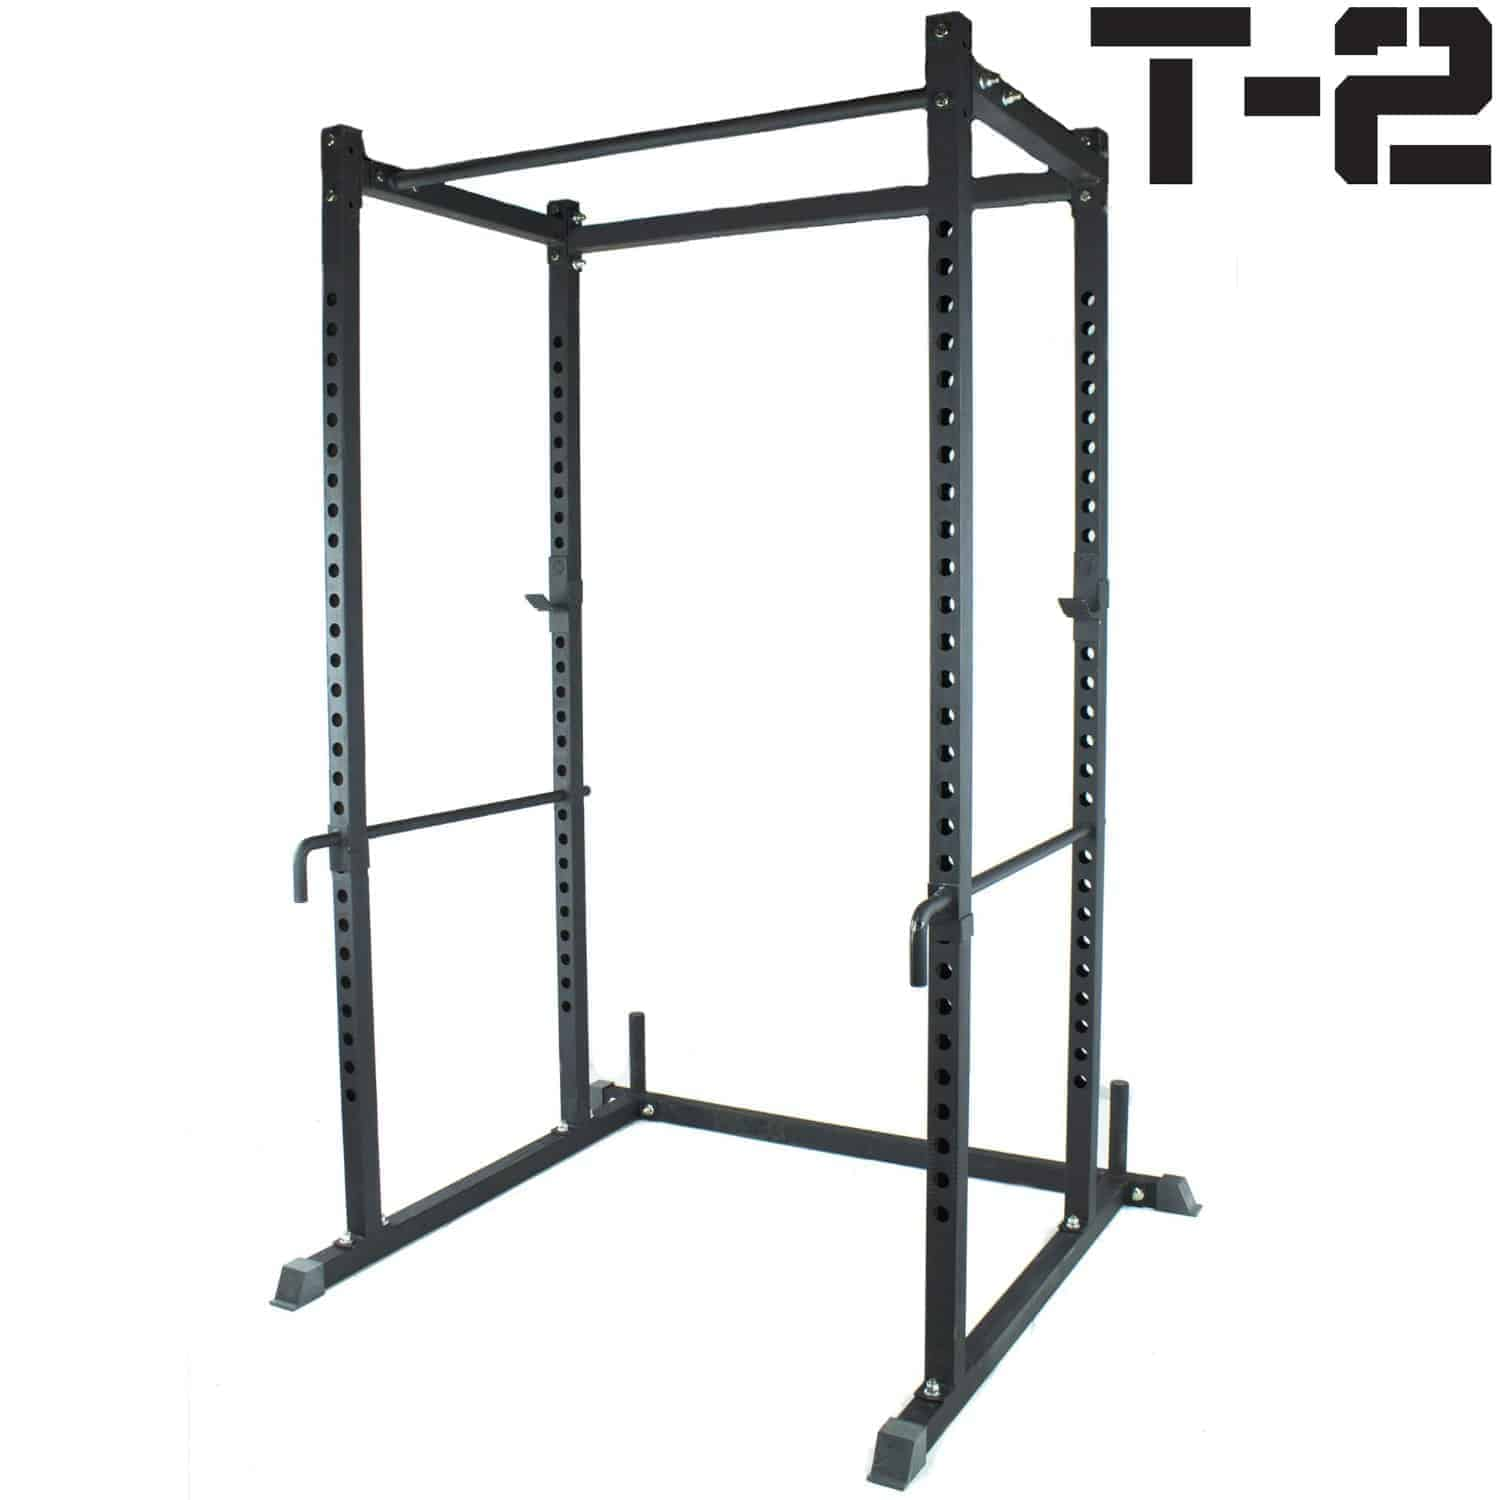 Best 6 Power Rack Reviews Guide To Get Perfect Cage For Home